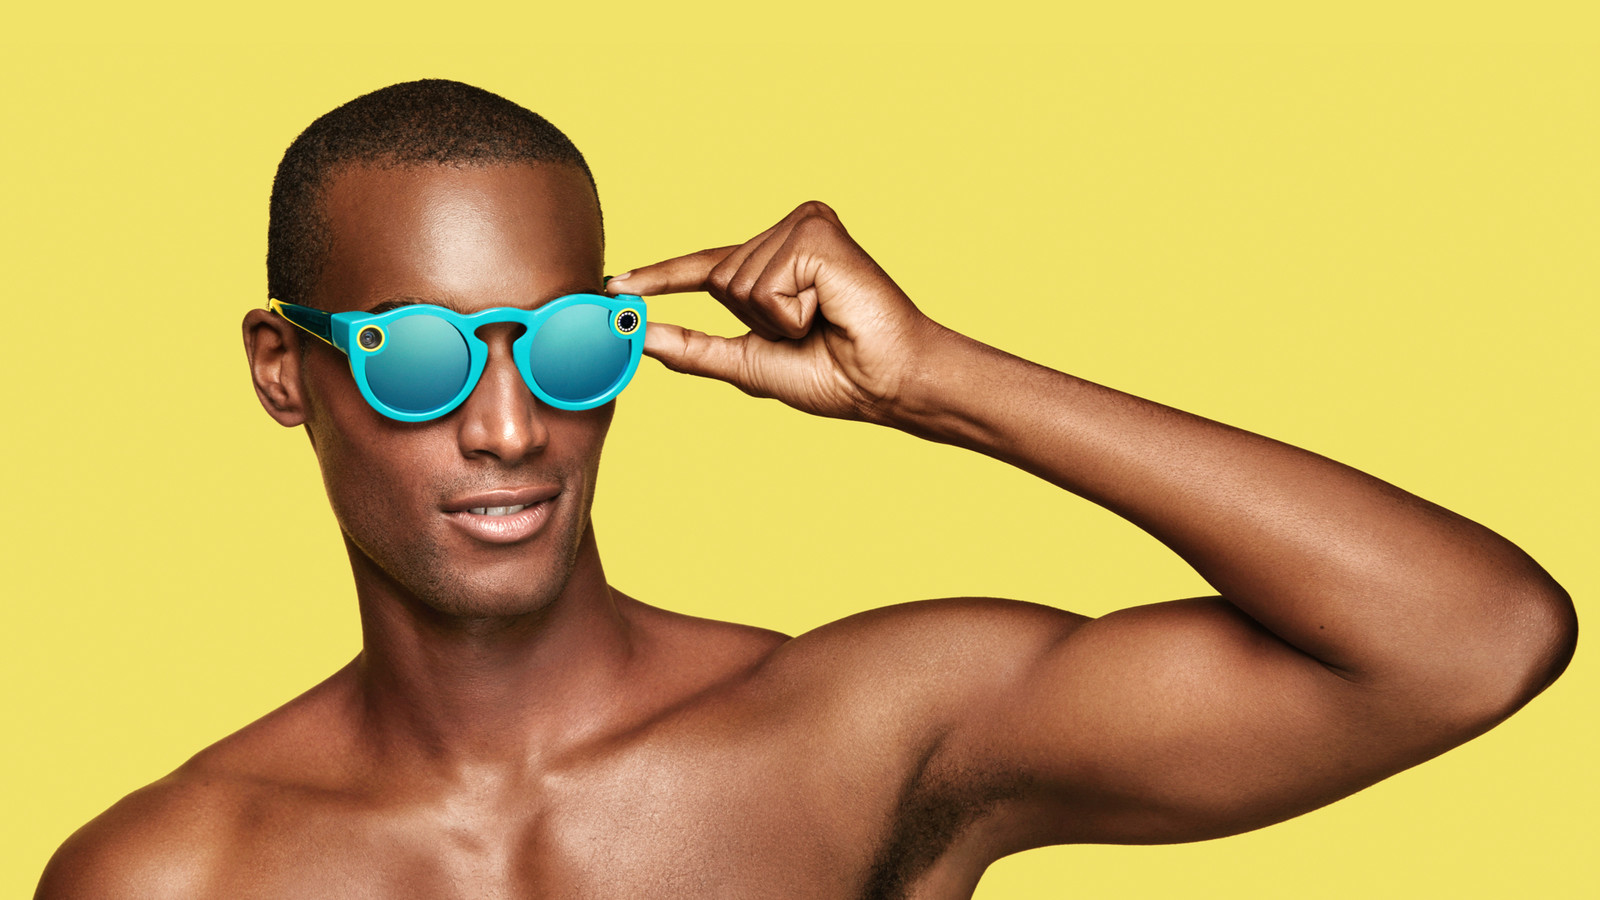 theverge.com - Casey Newton - Here's how Snapchat's new Spectacles will work